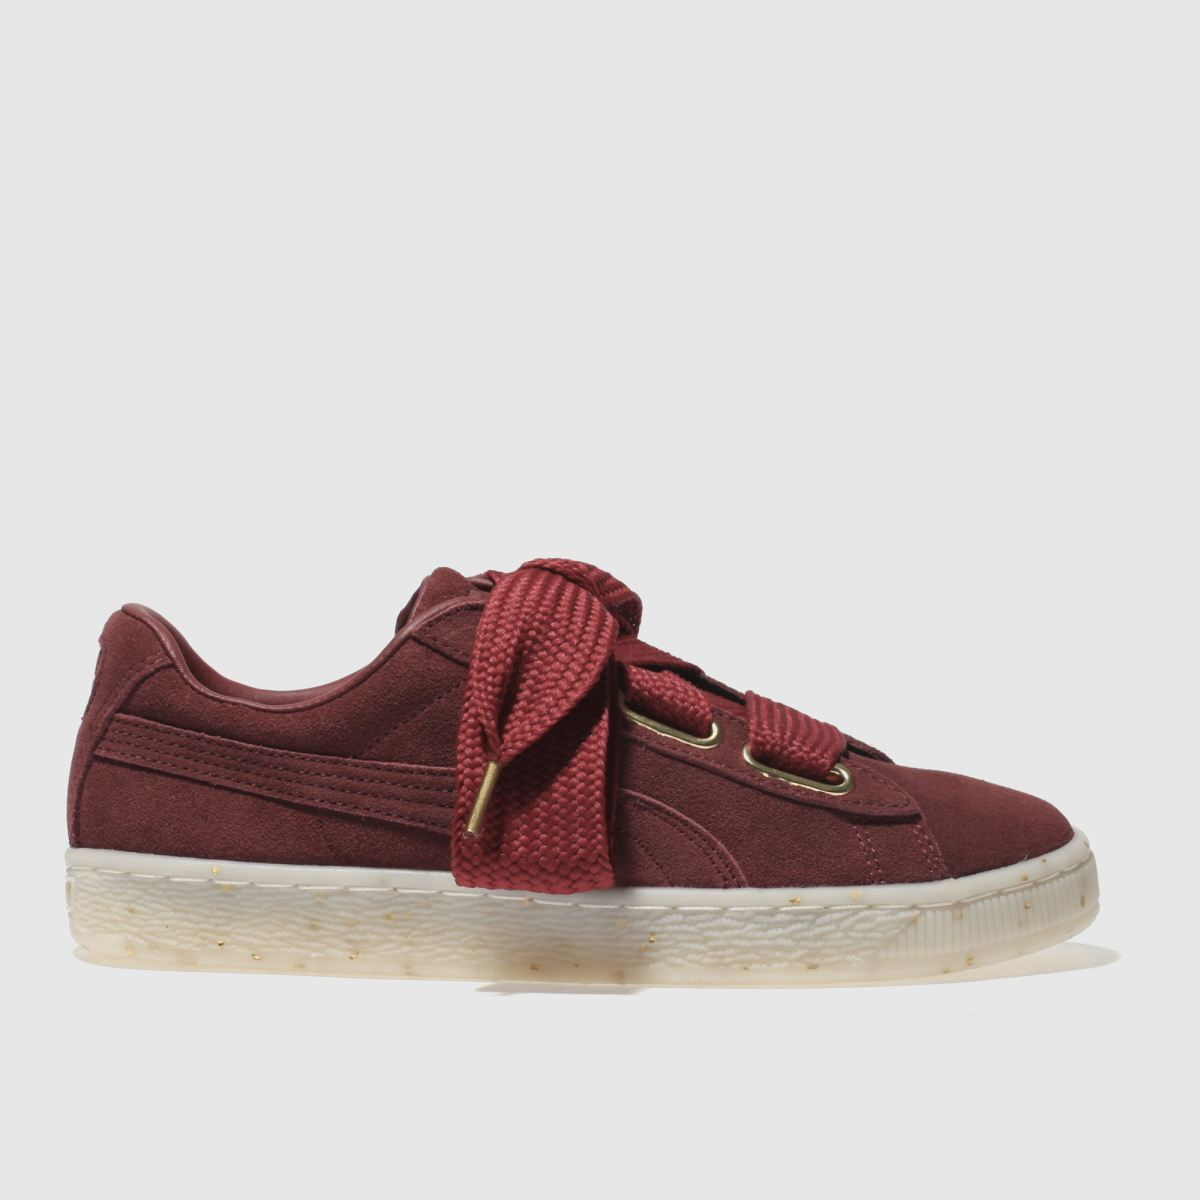 Puma Red Suede Heart Celebrate Trainers